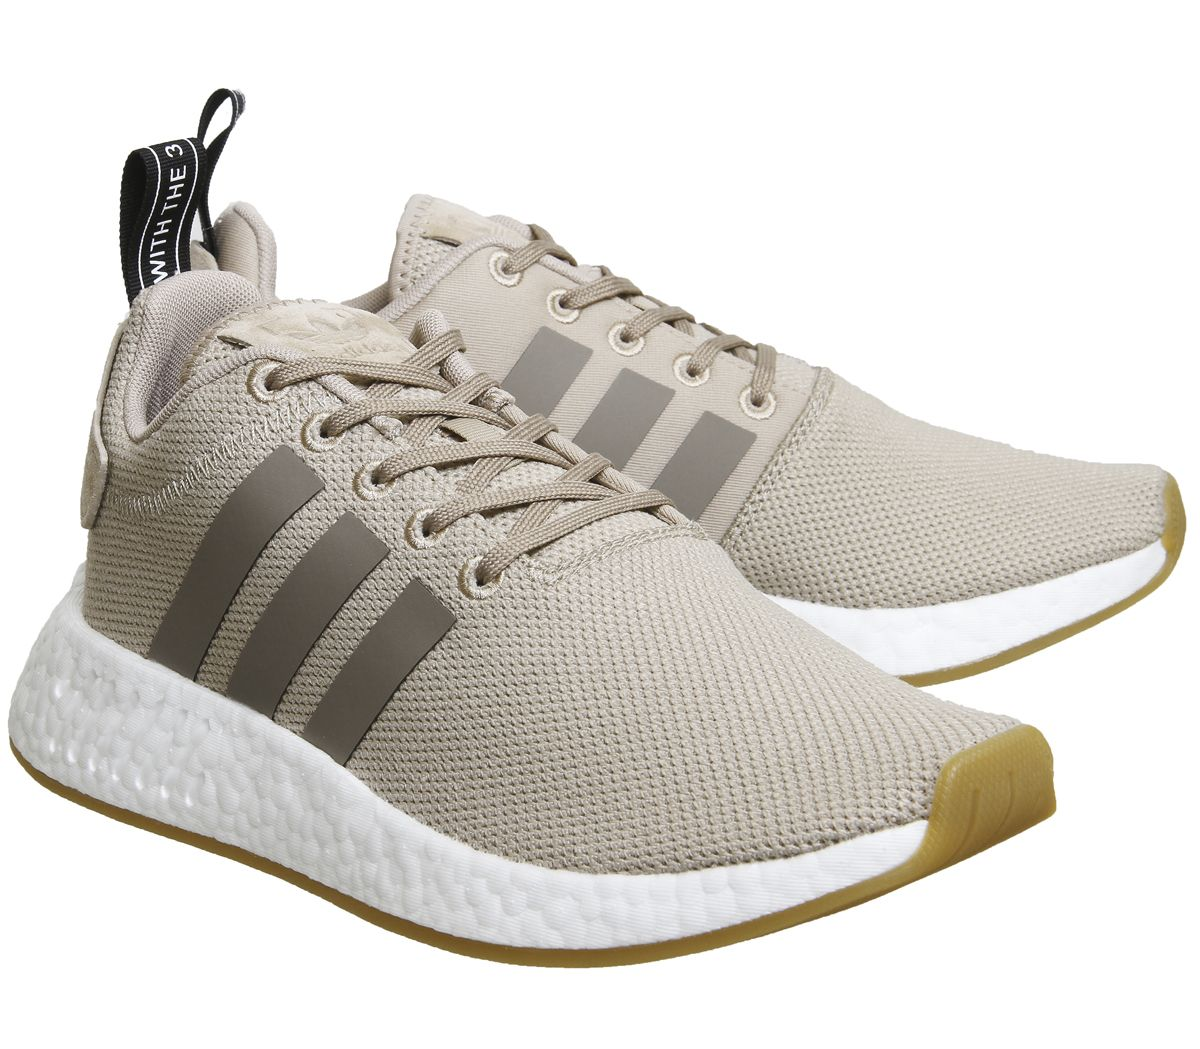 dcfc083d8 Sentinel Womens Adidas Nmd R2 Trace Khaki Brown Trainers Shoes